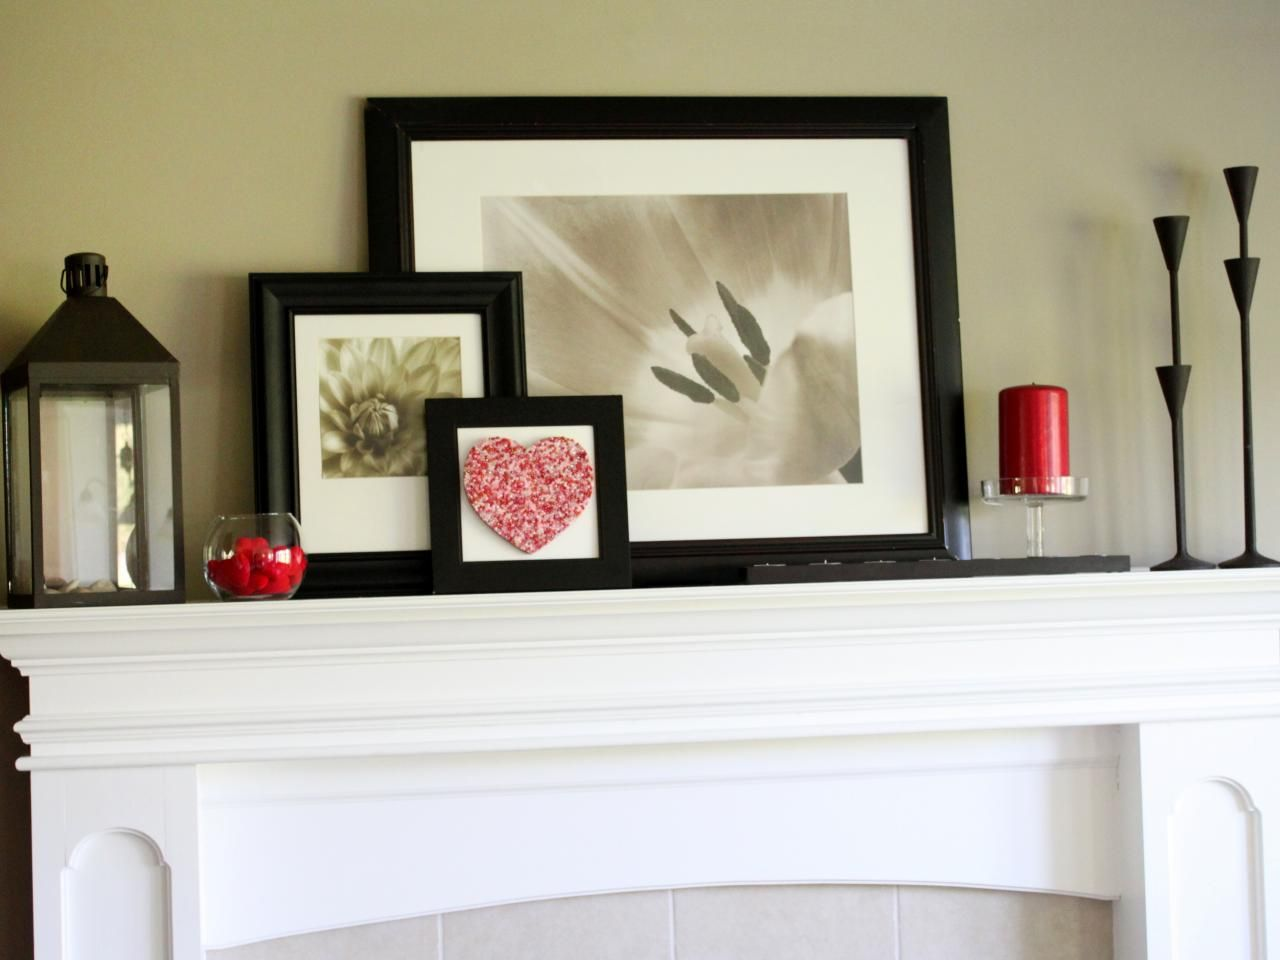 Modern Fireplace Mantel Decor Decorate Your Mantel Year Round Mantels Decorating And Hgtv